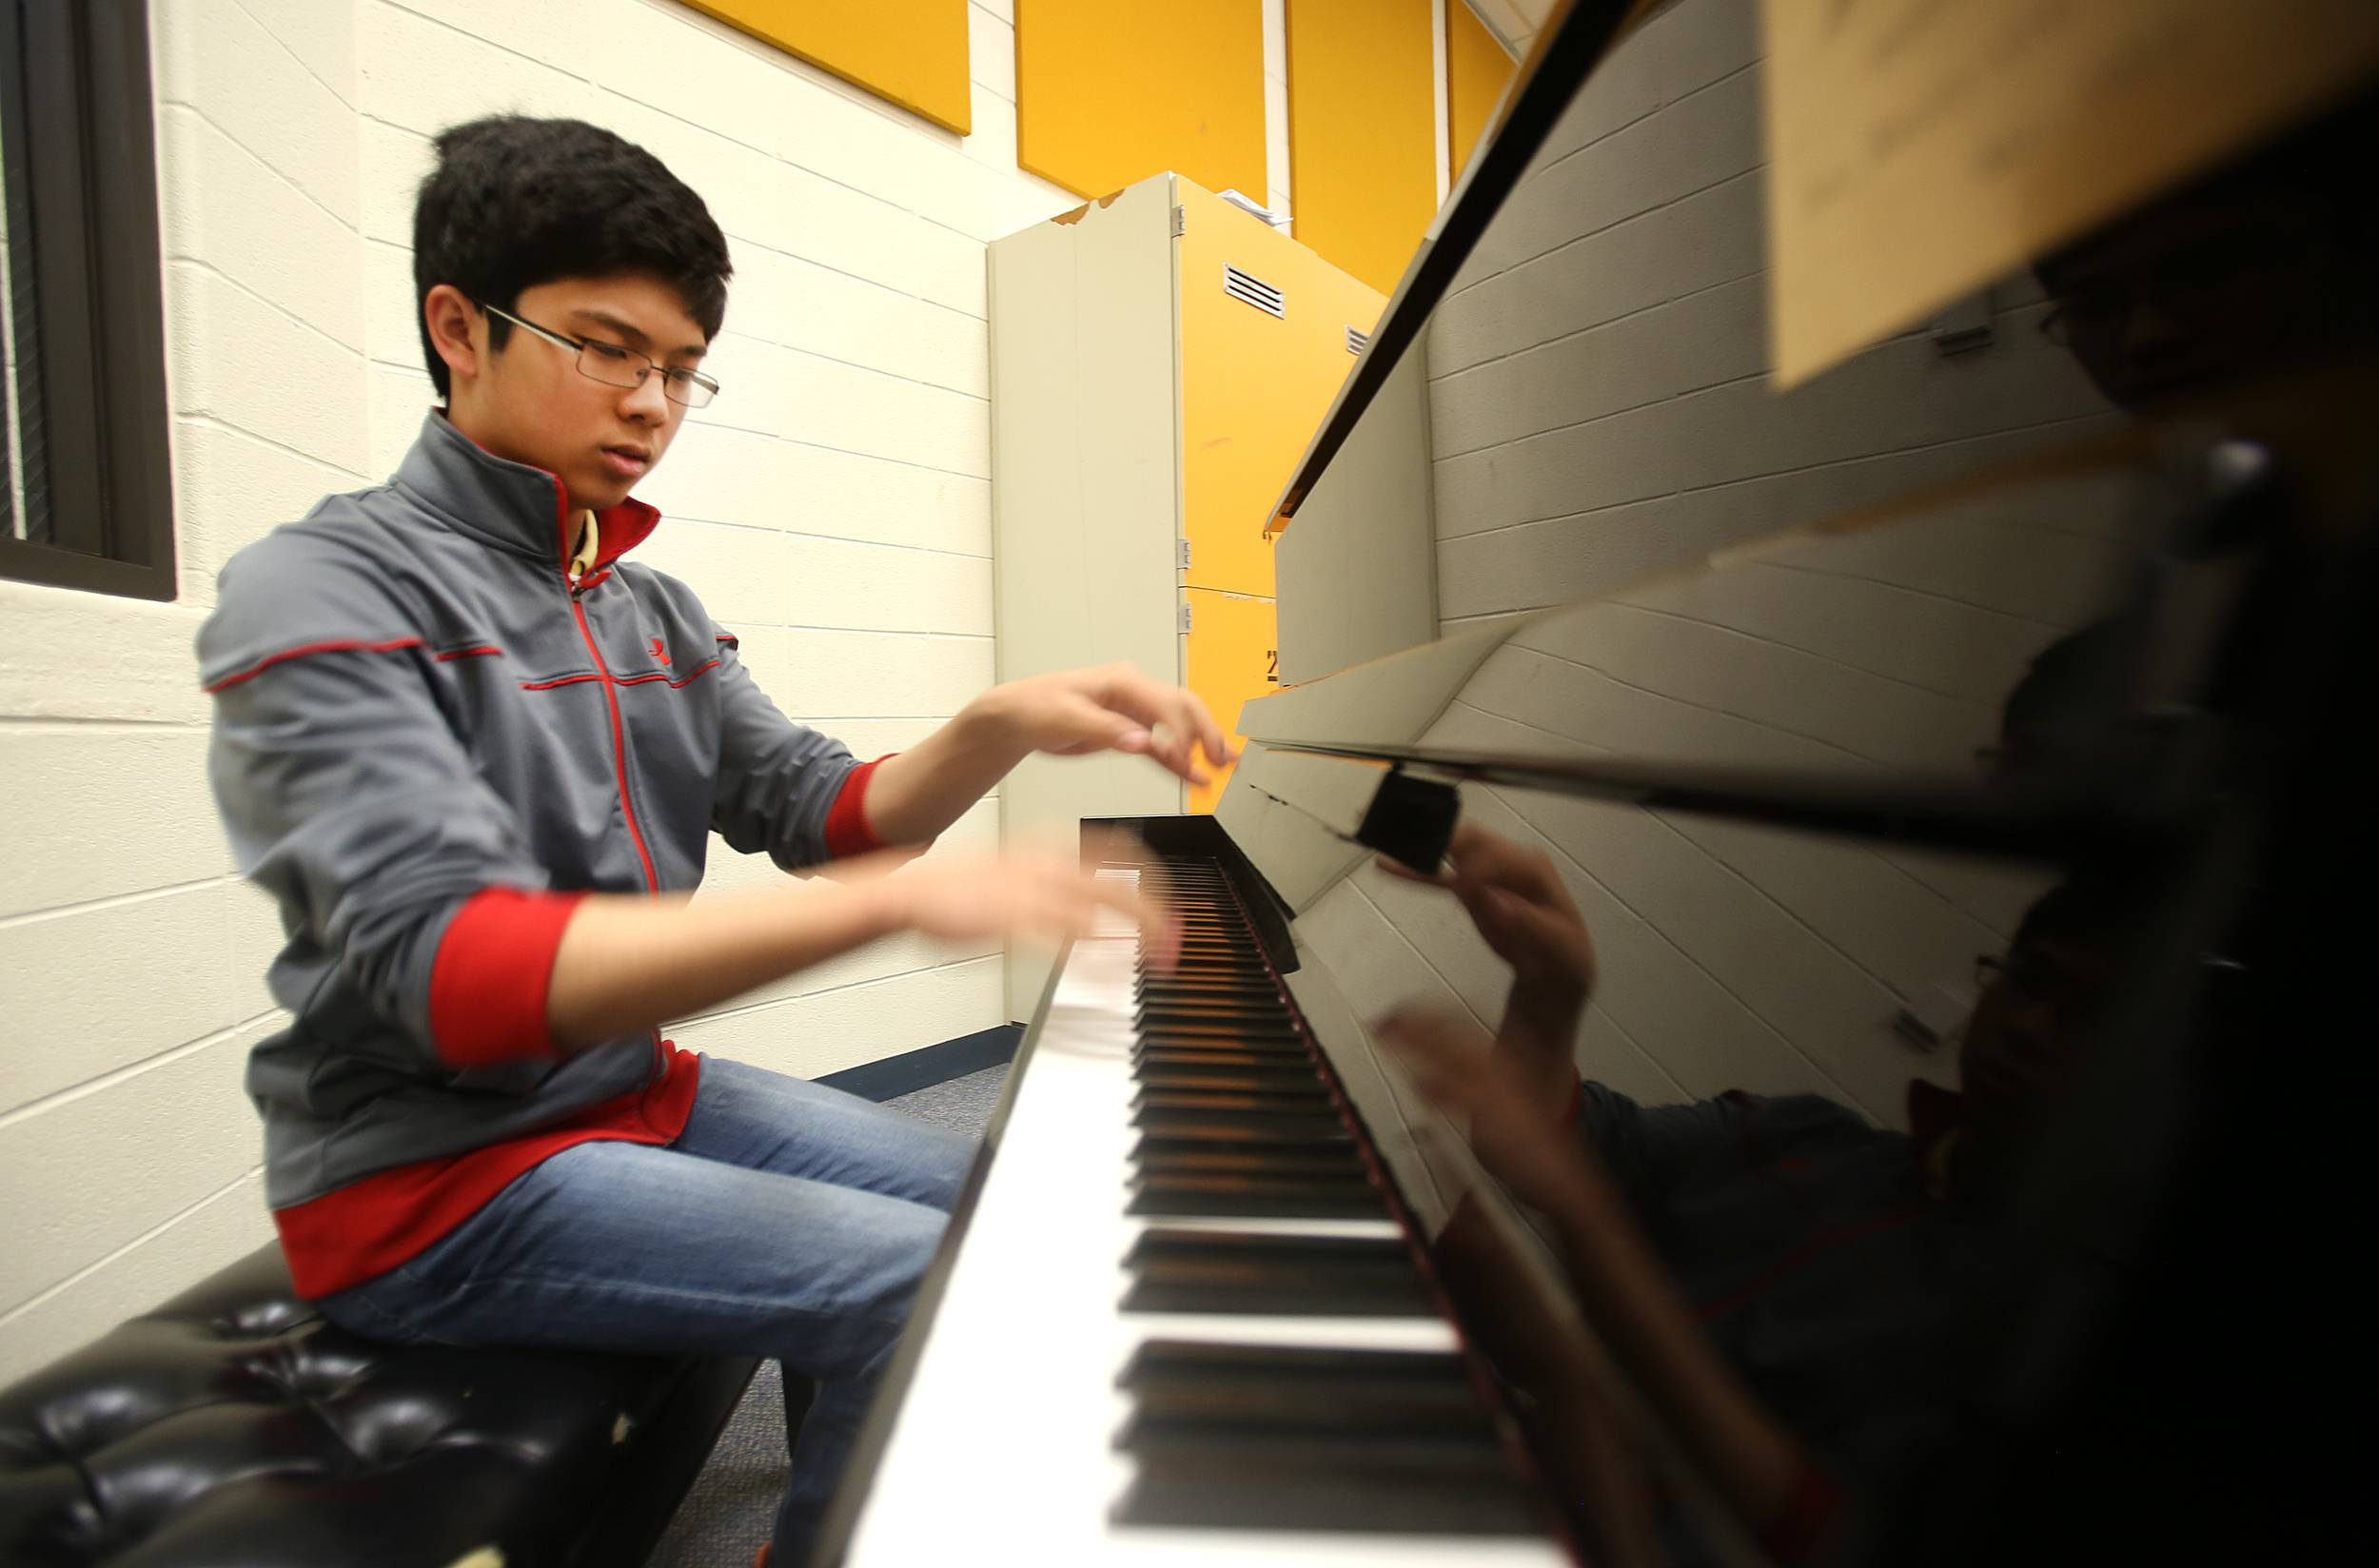 Timothy Zhou, a junior at the Illinois Mathematics and Science Academy, earned an honorable mention in music from the National YoungArts Foundation. The 17-year-old also excels in chess and mathematics.